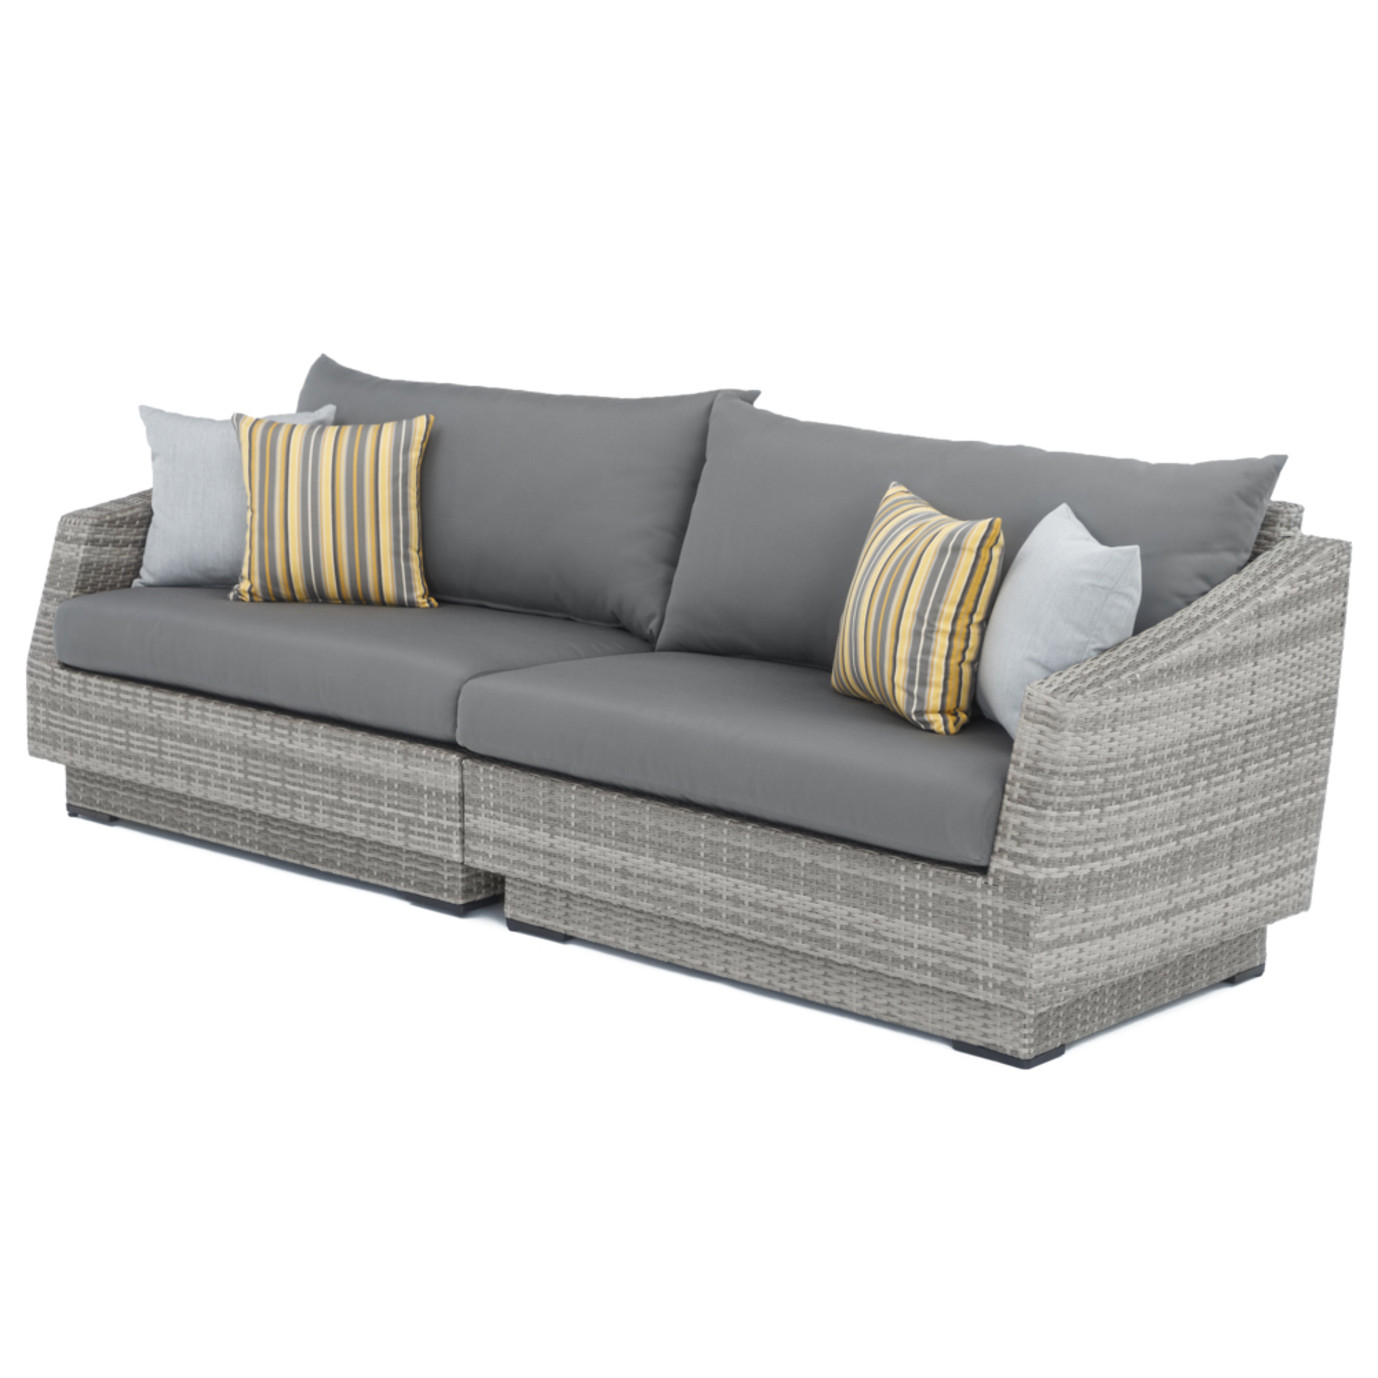 Cannes™ Sofa - Charcoal Gray